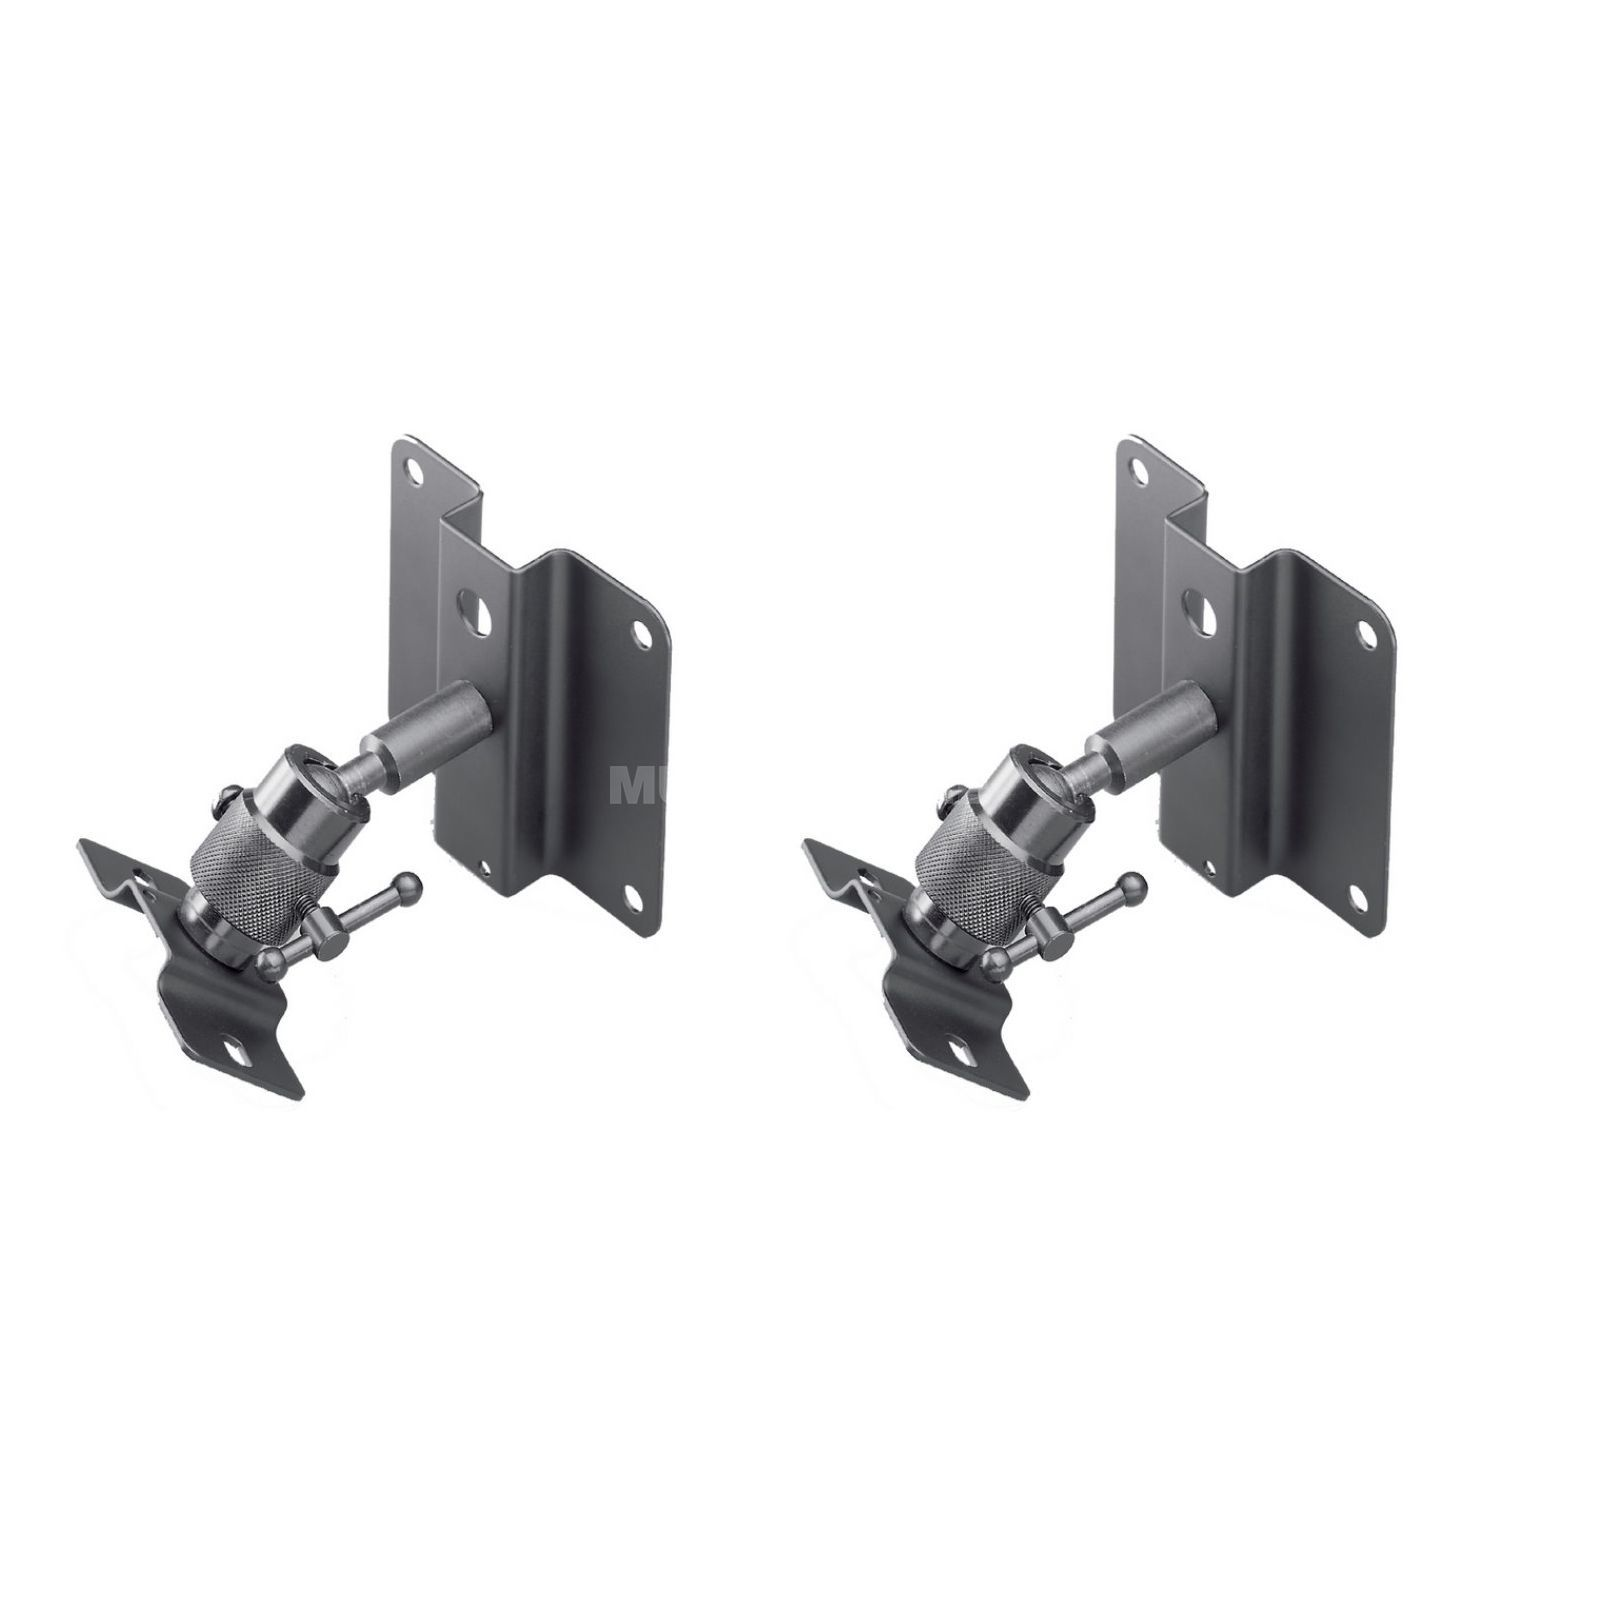 Adam Hall SPSG 3 B Wall Mount for Speakers Product Image